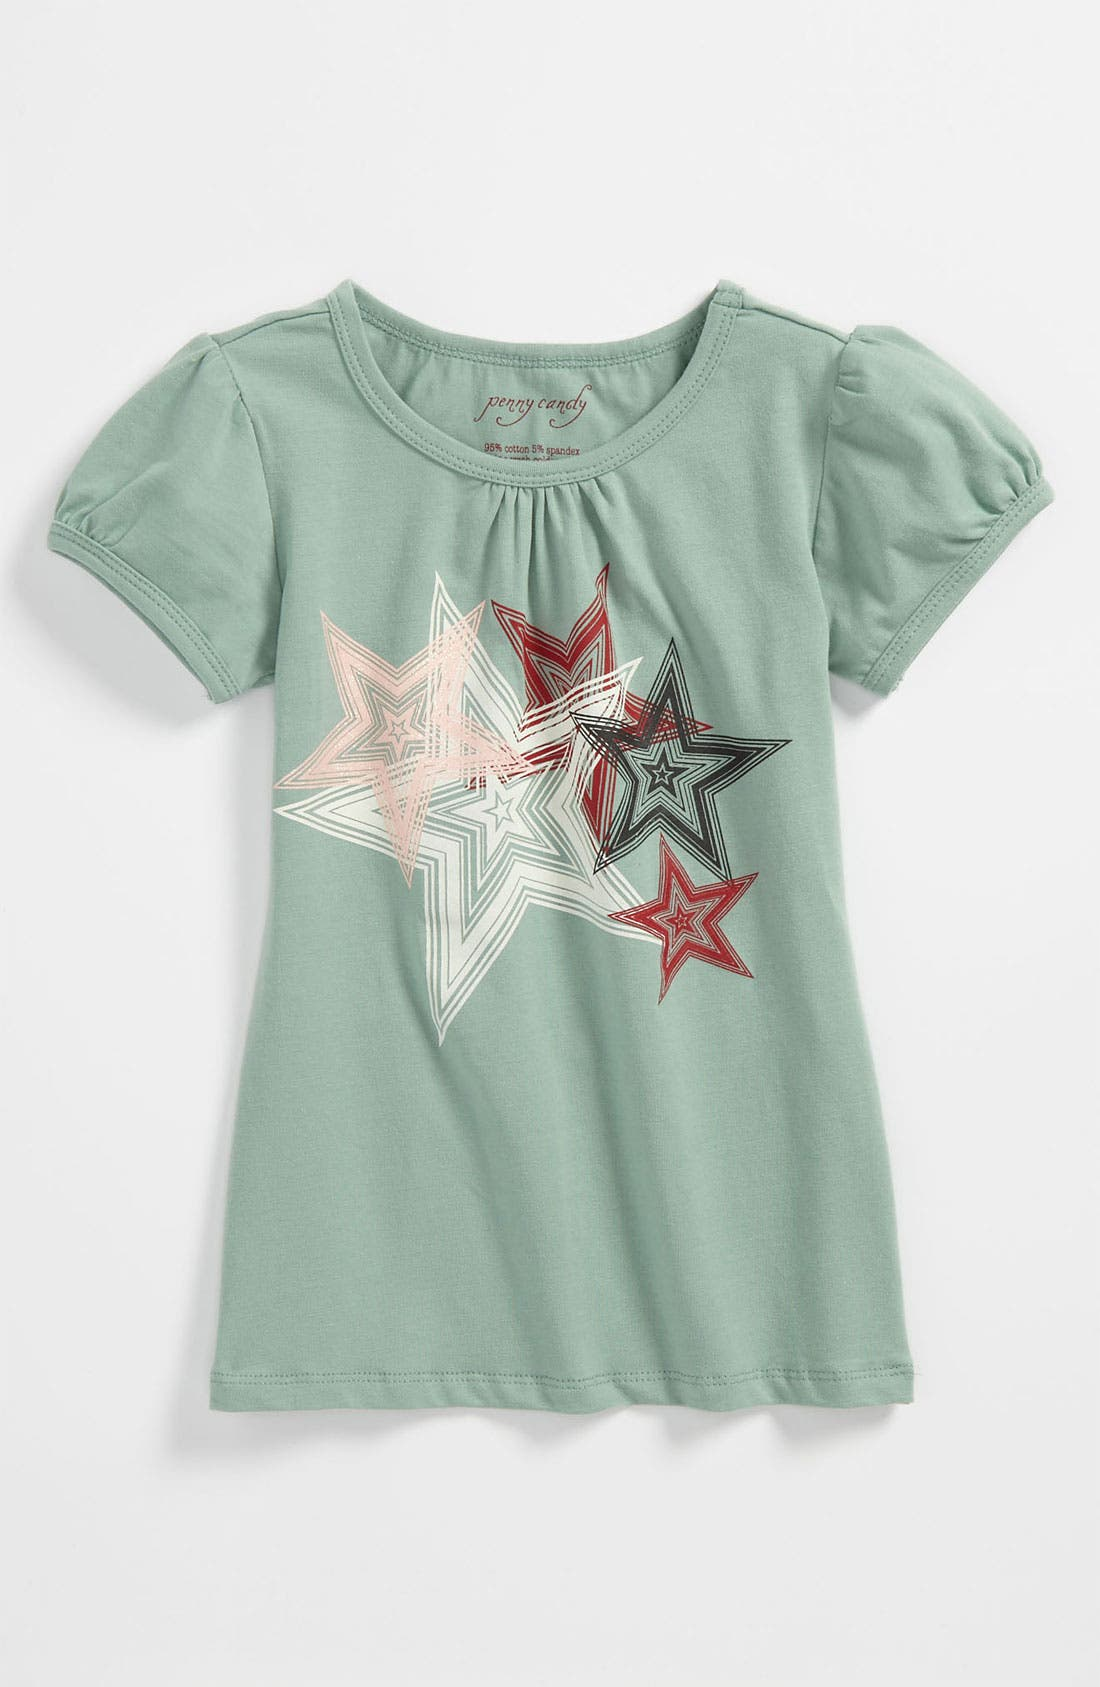 Alternate Image 1 Selected - Penny Candy 'Jane' Tee (Little Girls & Big Girls)